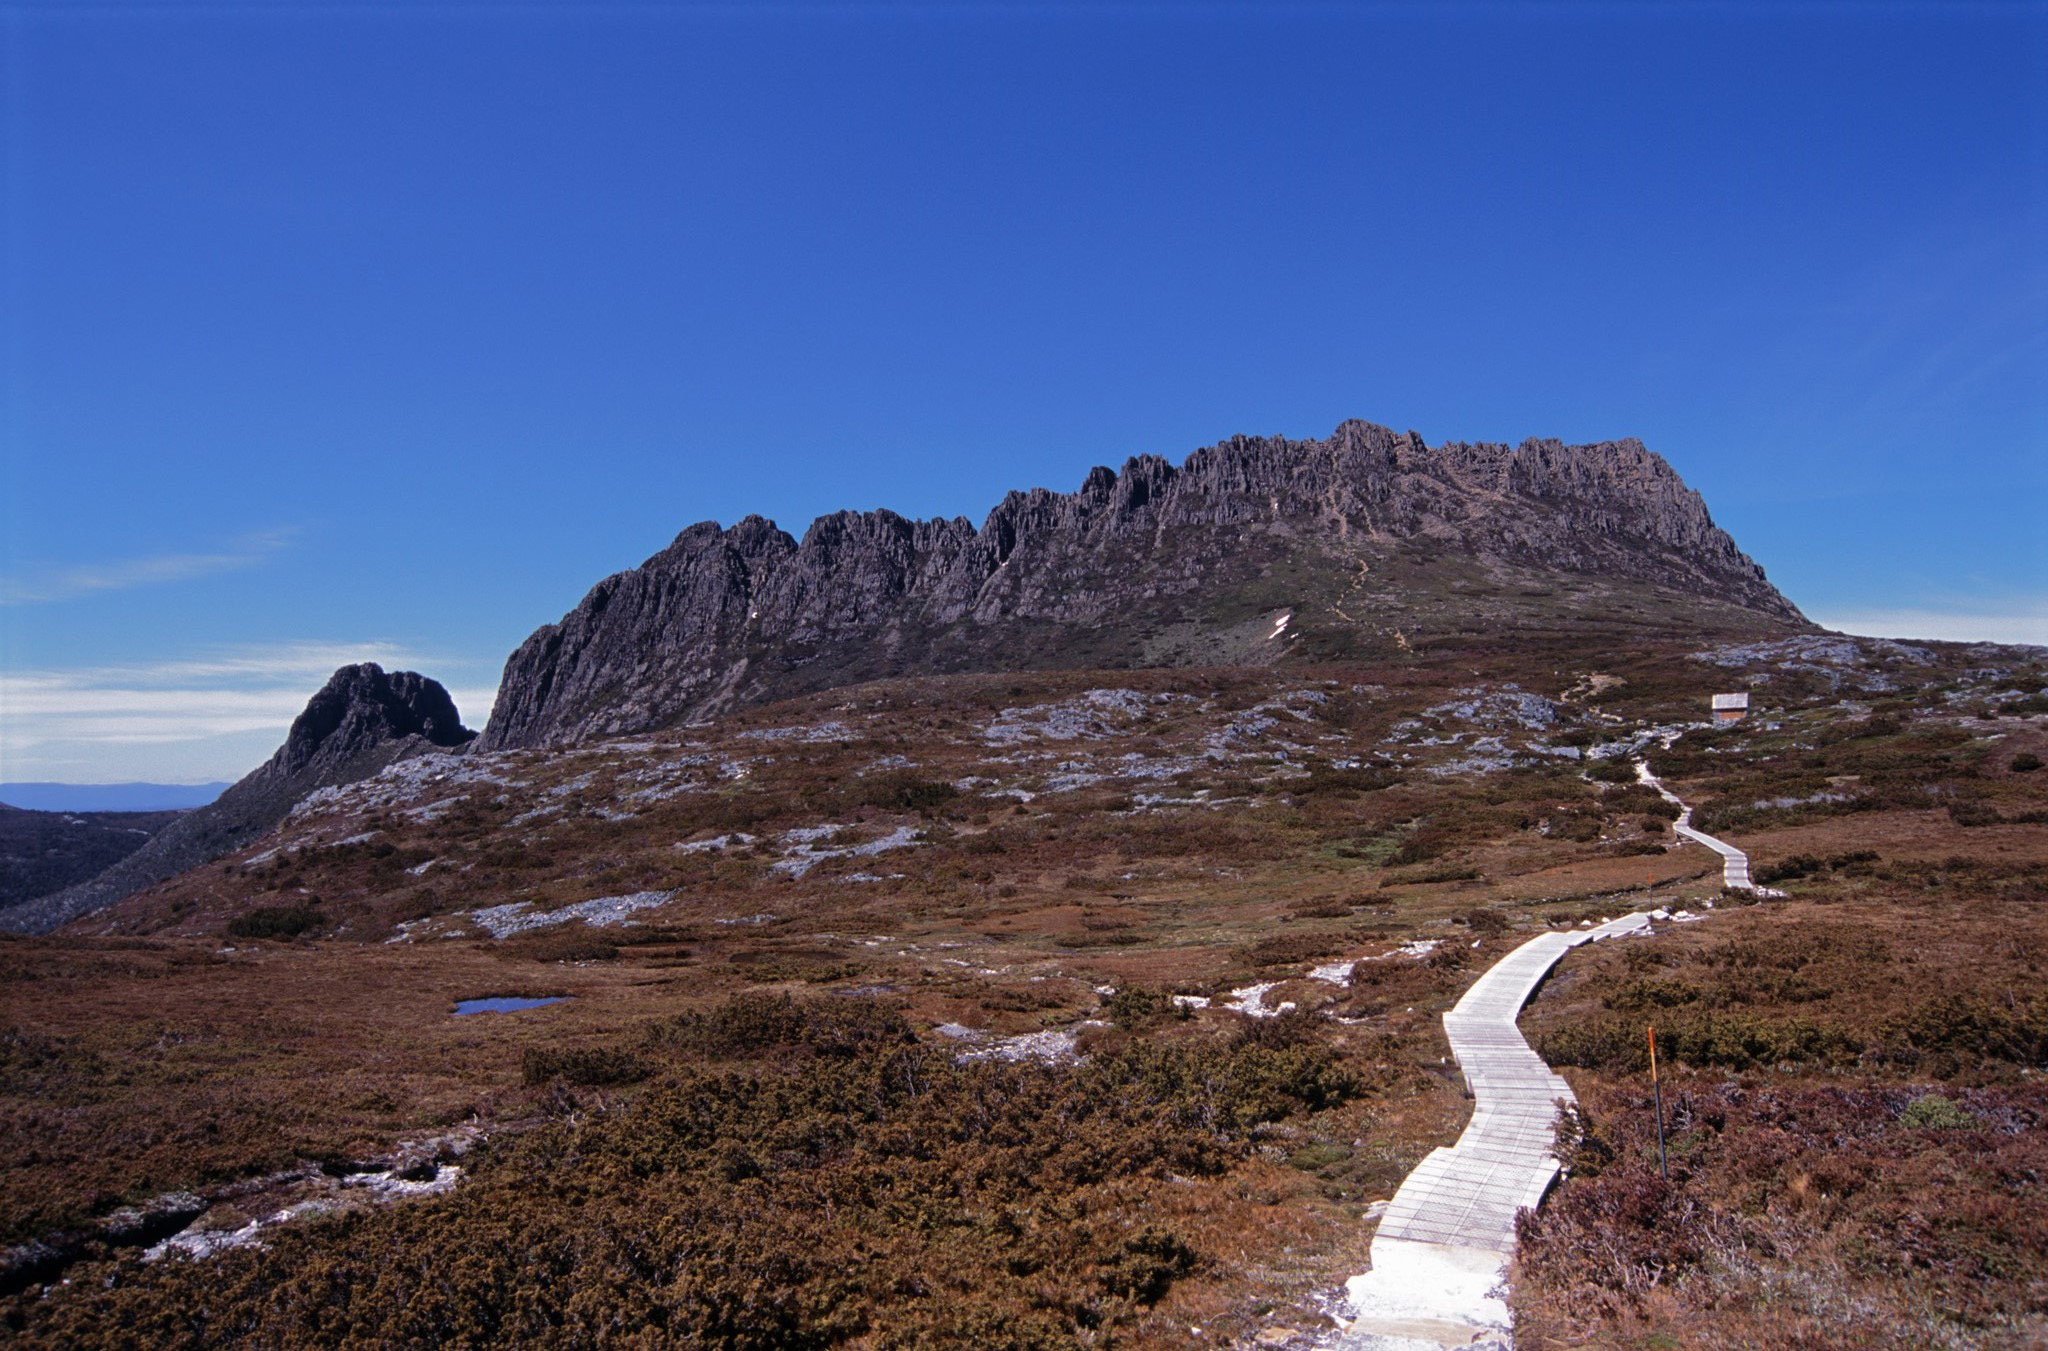 Overland trail with a wooden boardwalk leading to Cradle Mountain, Tasmania in the highlands